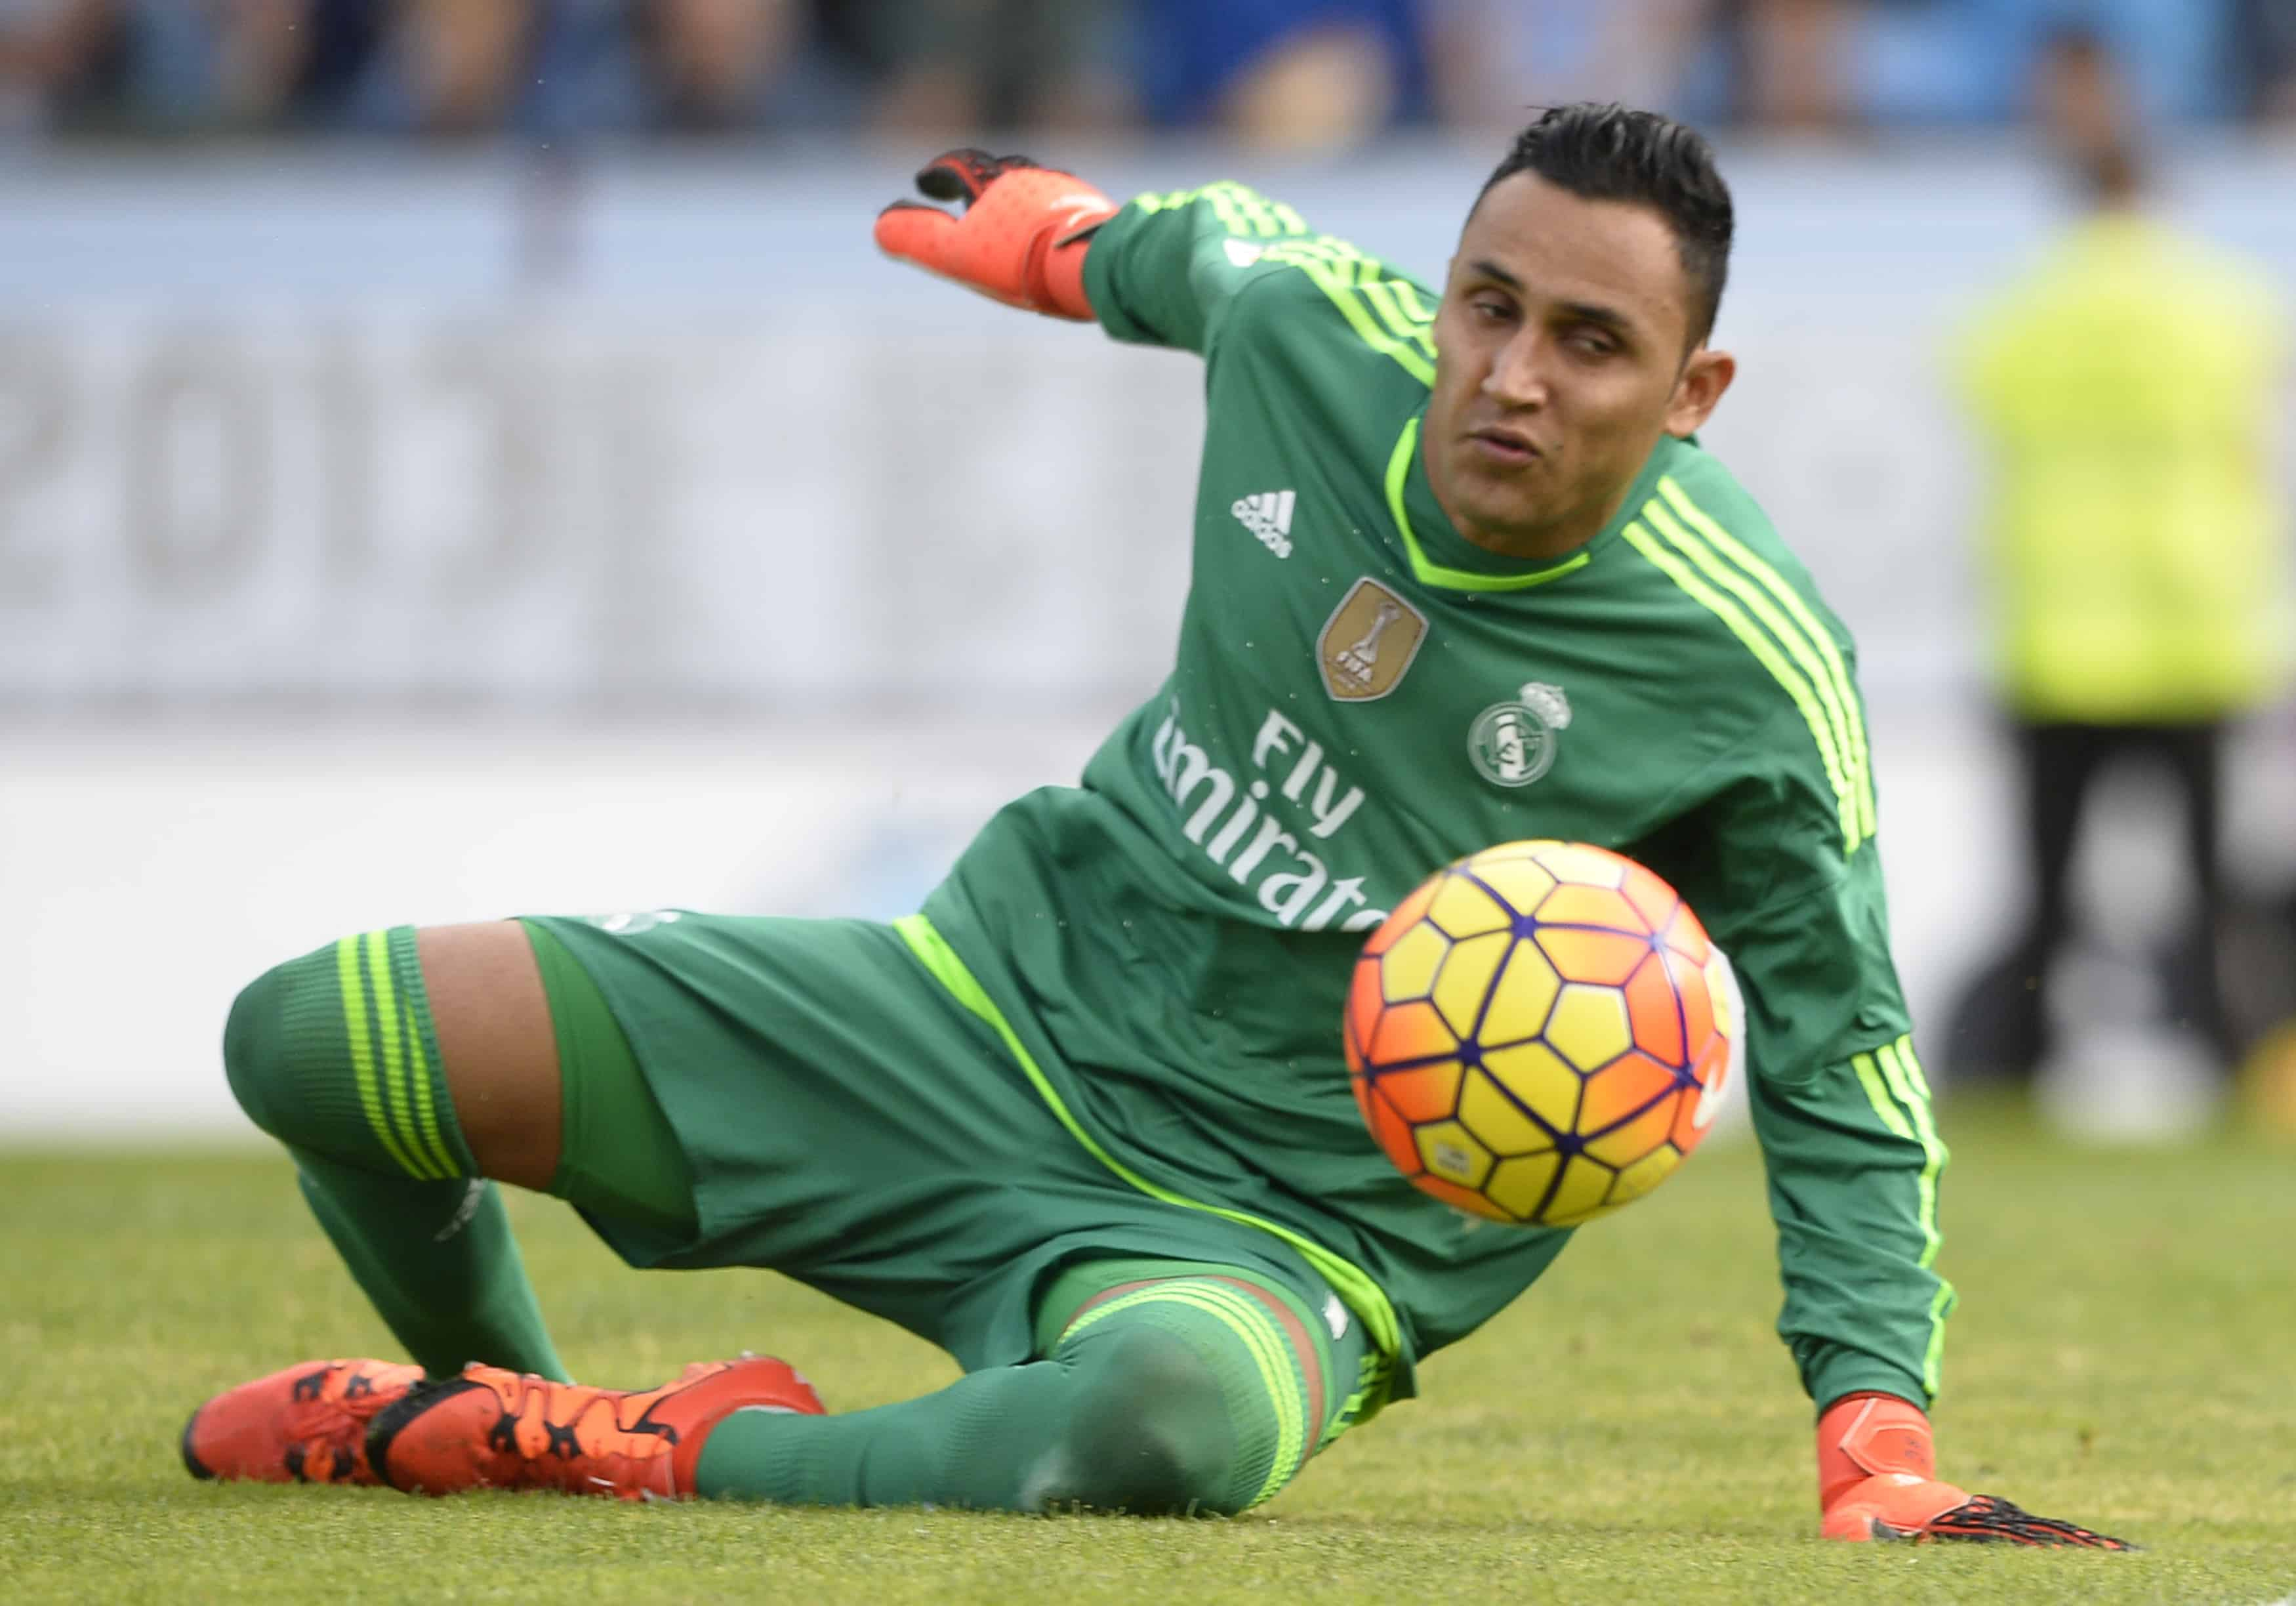 Keylor Navas allows four goals as Barcelona crushes Real Madrid